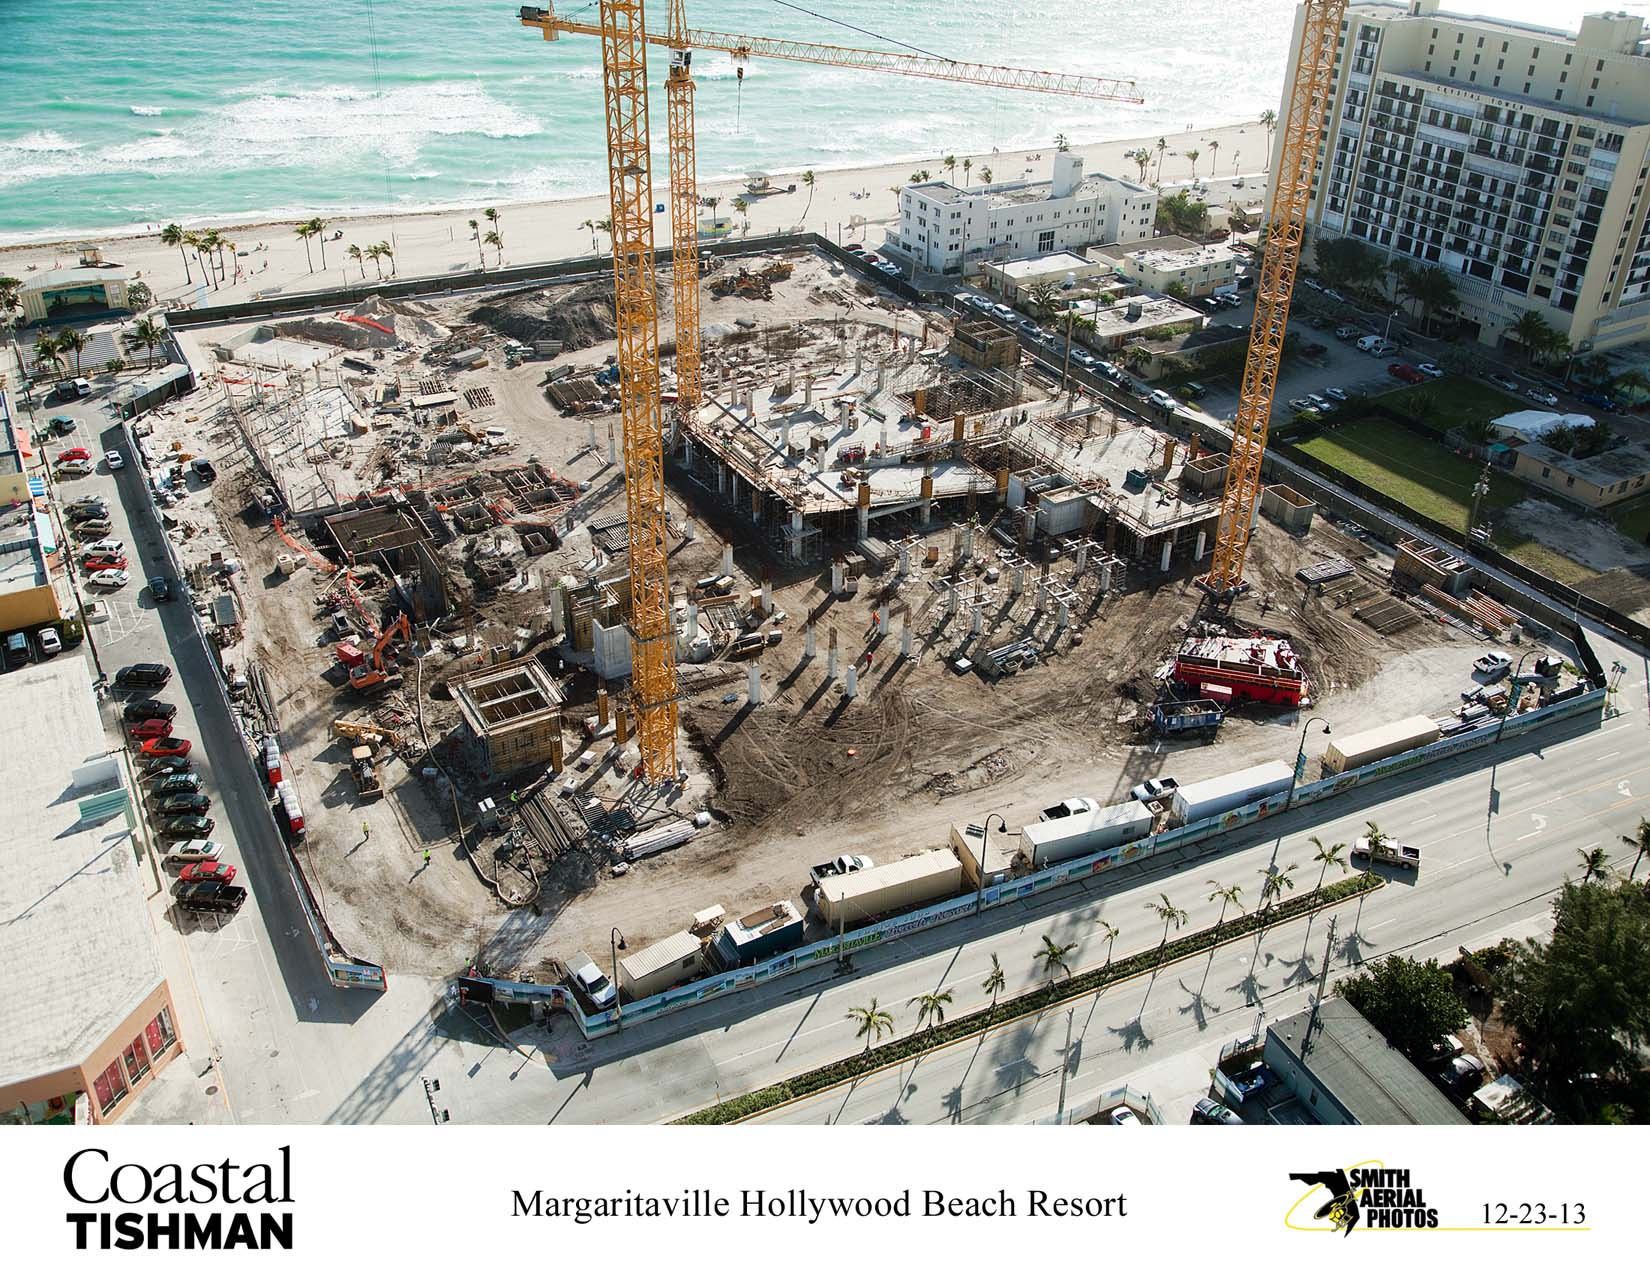 Margaritaville Construction Dec 13 - 1